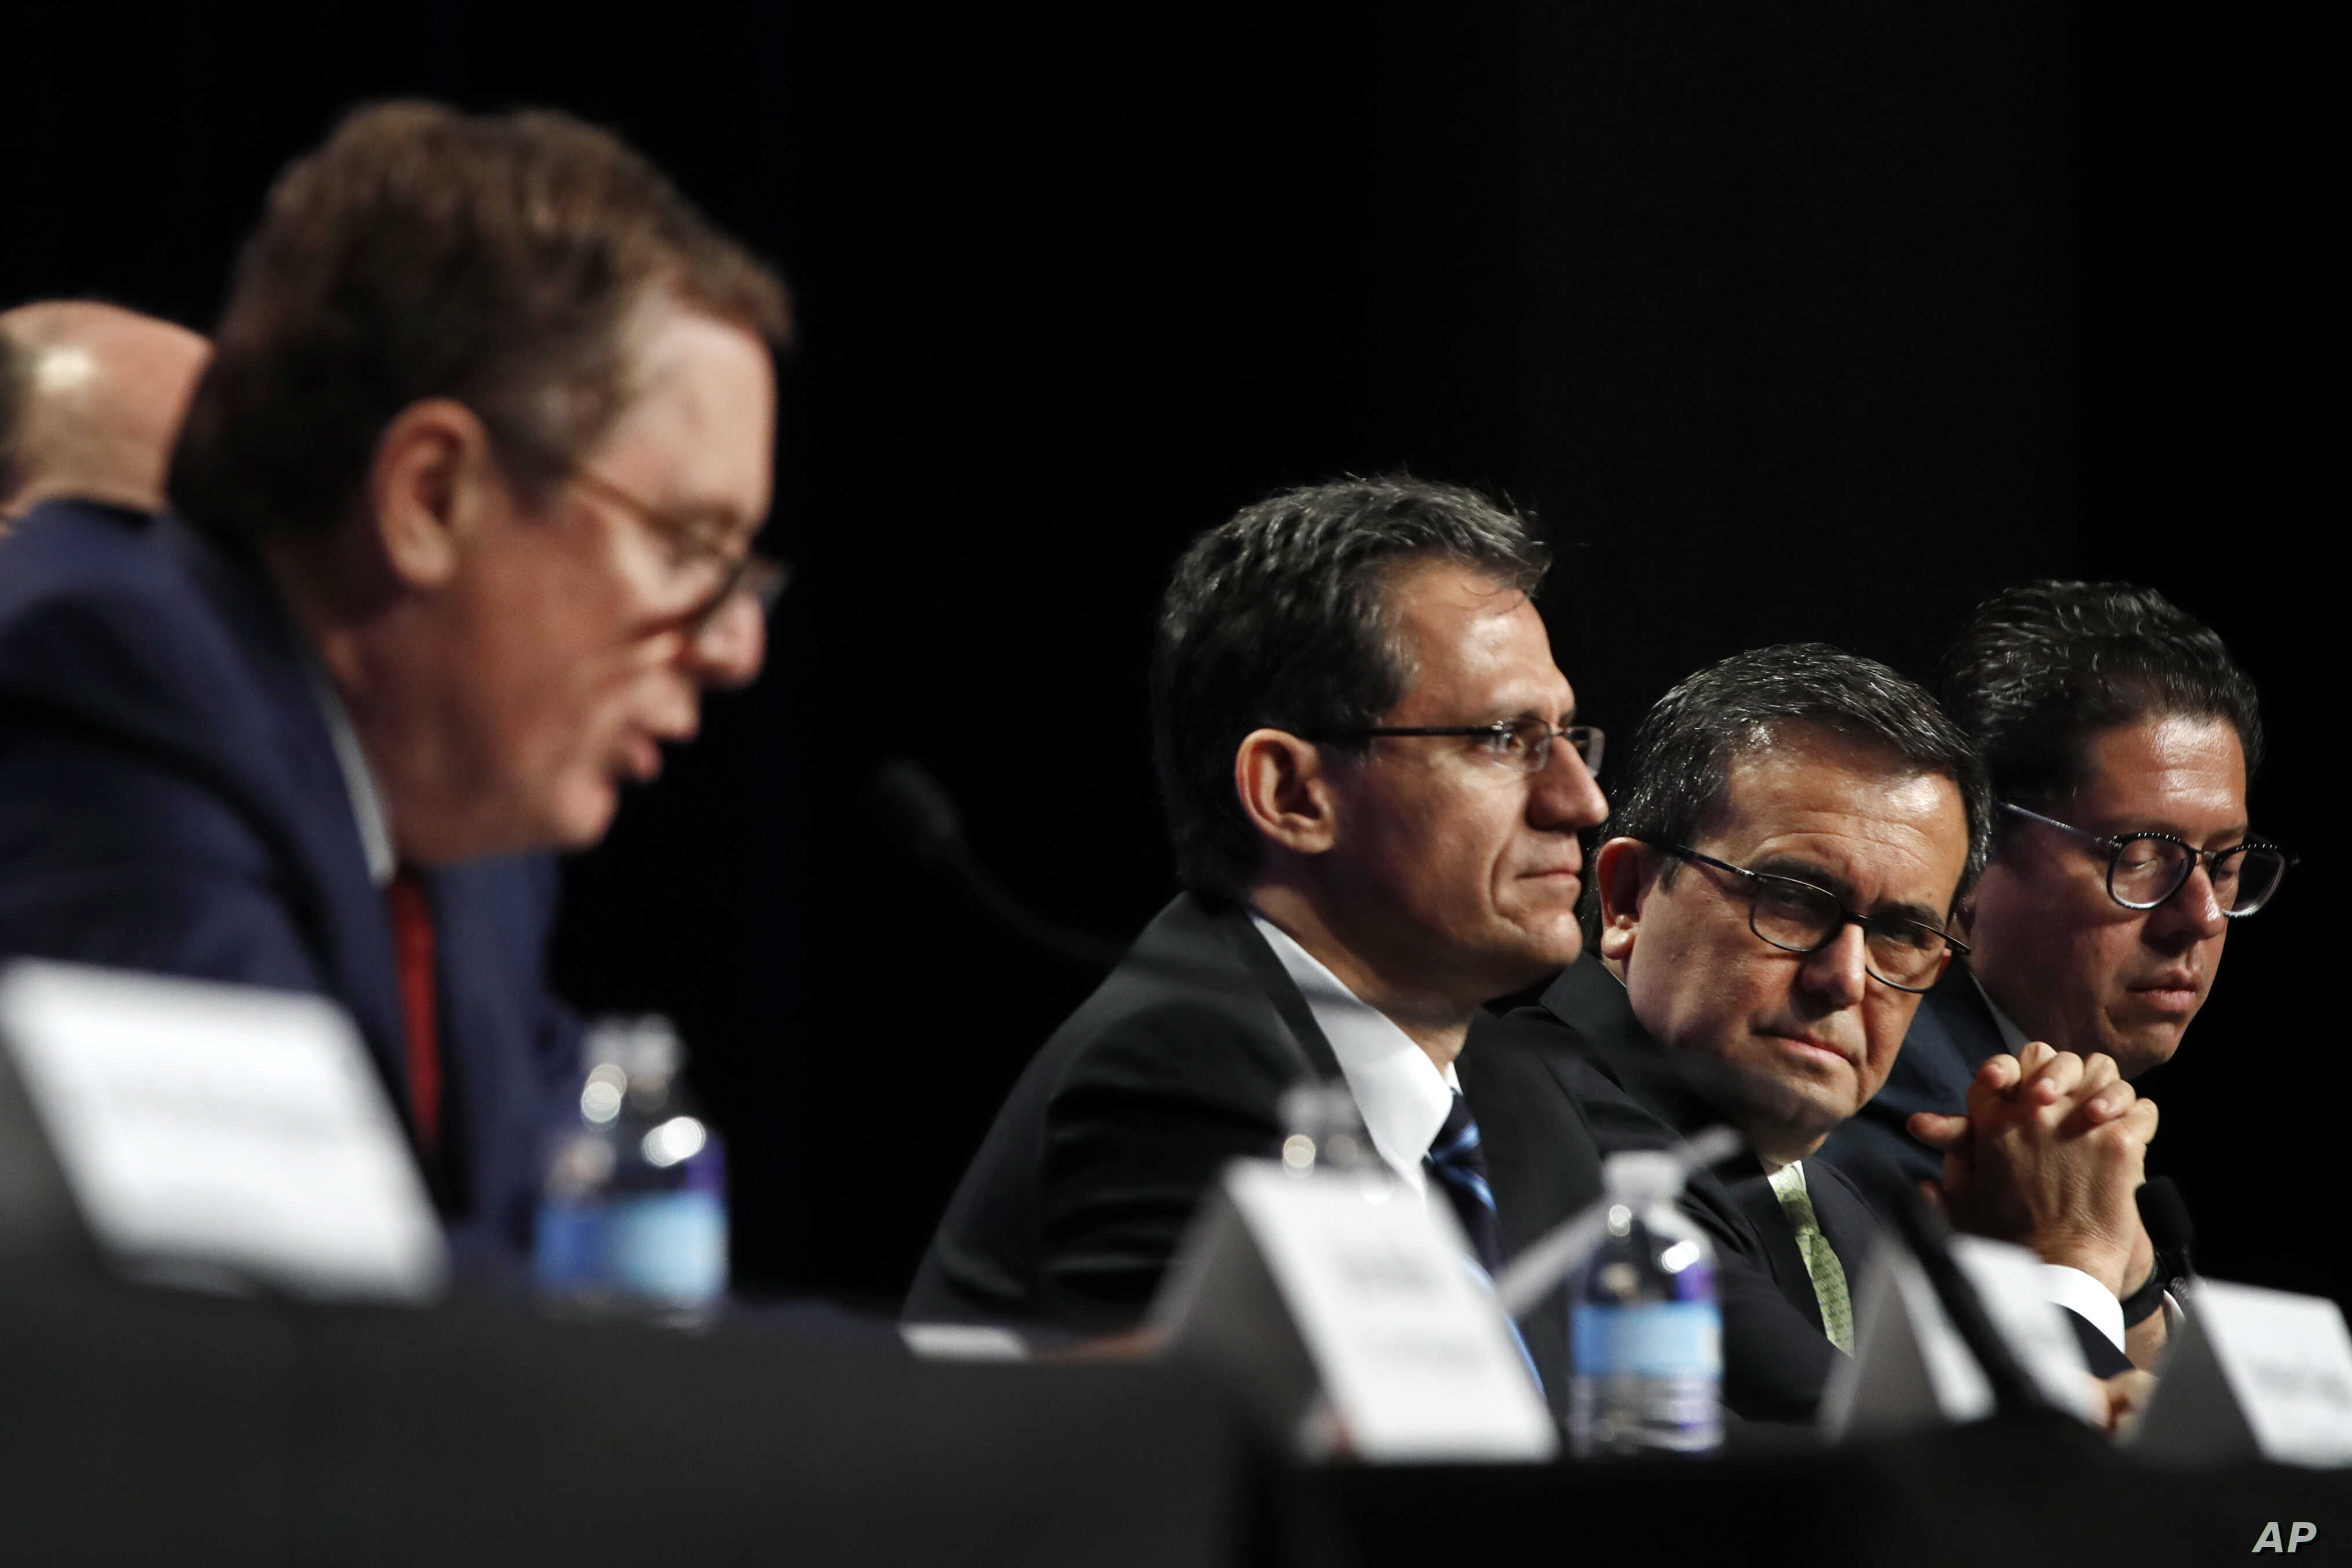 U.S. Trade Representative Robert Lighthizer, left, speaks while Mexico's Chief Technical Negotiator Kenneth Smith, Mexico's Secretary of Economy Ildefonso Guajardo Villarreal, and Mexico's Undersecretary of Foreign Trade Juan Carlos Baker, listen dur...